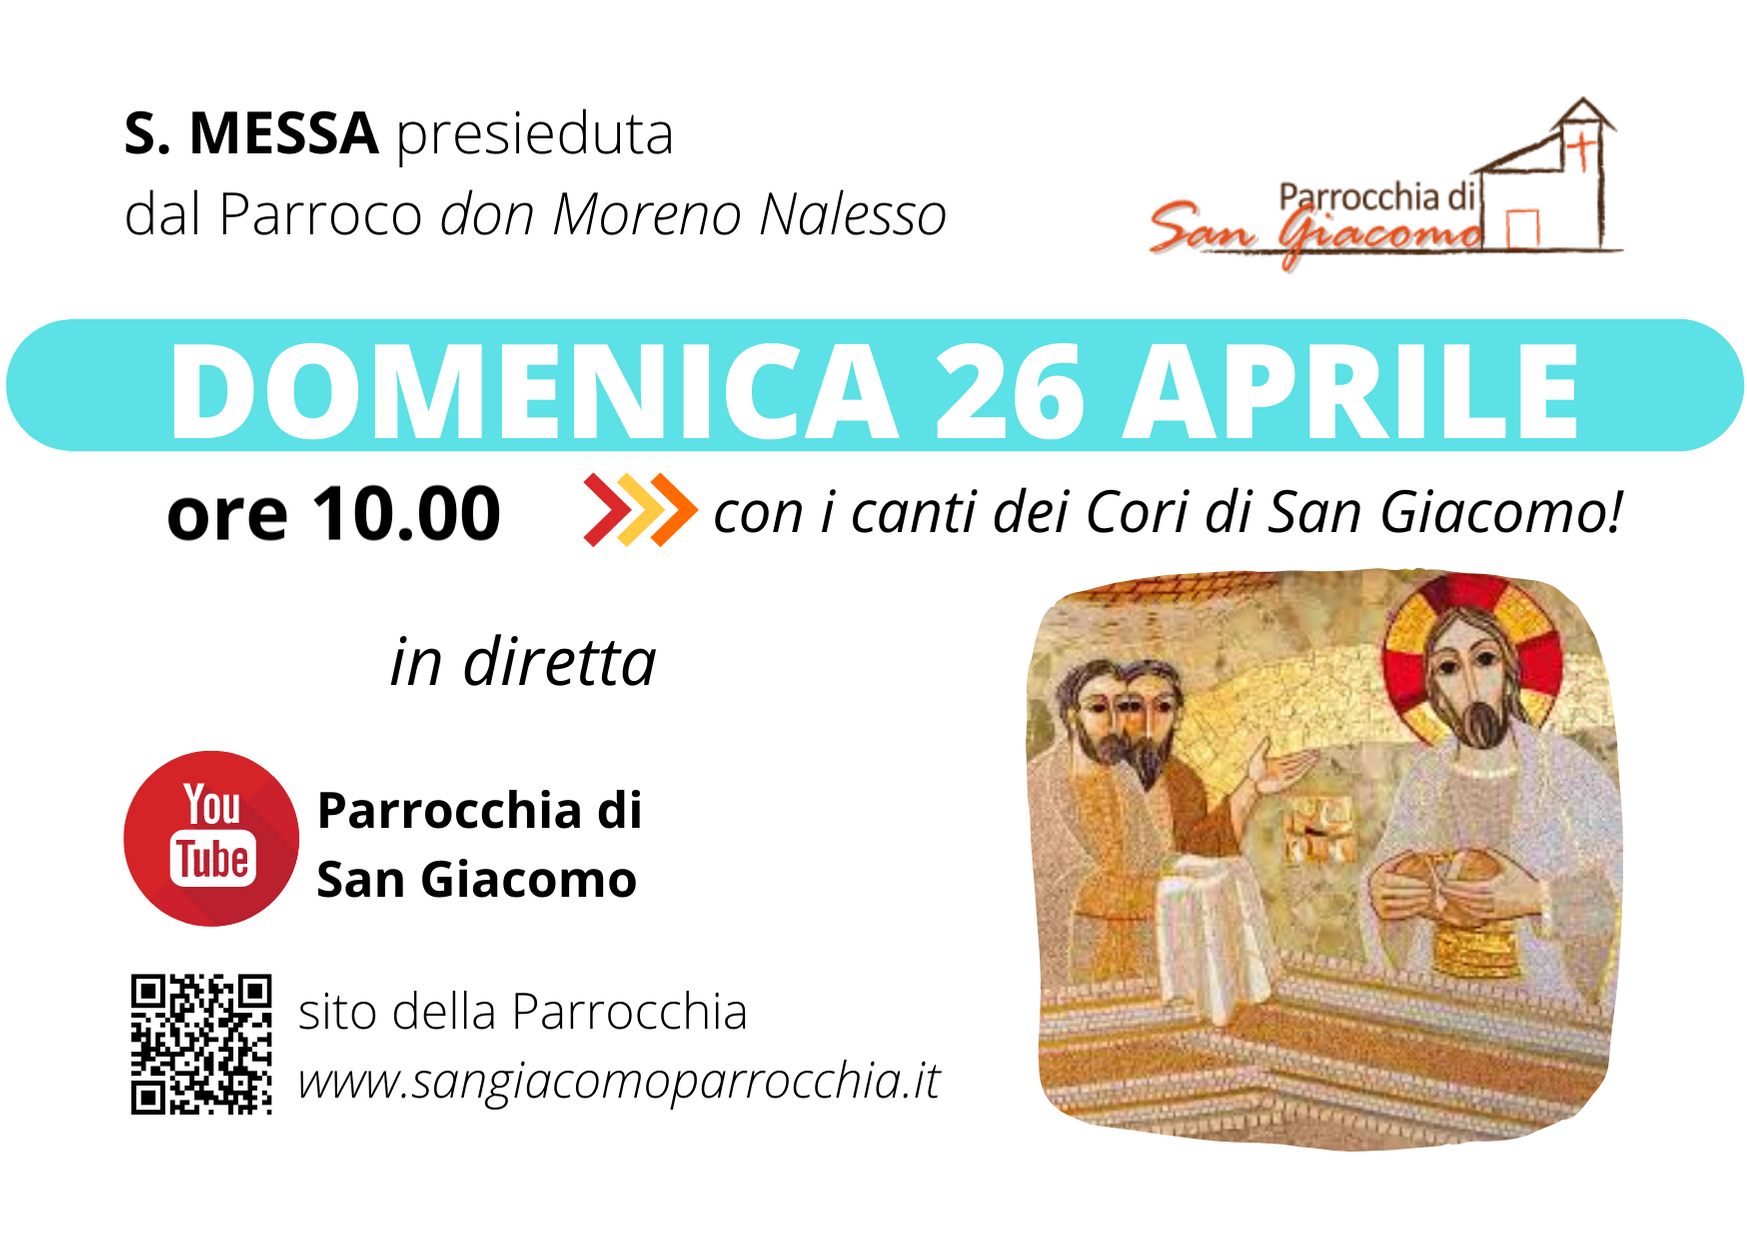 S. MESSA IN STREAMING 26 APRILE